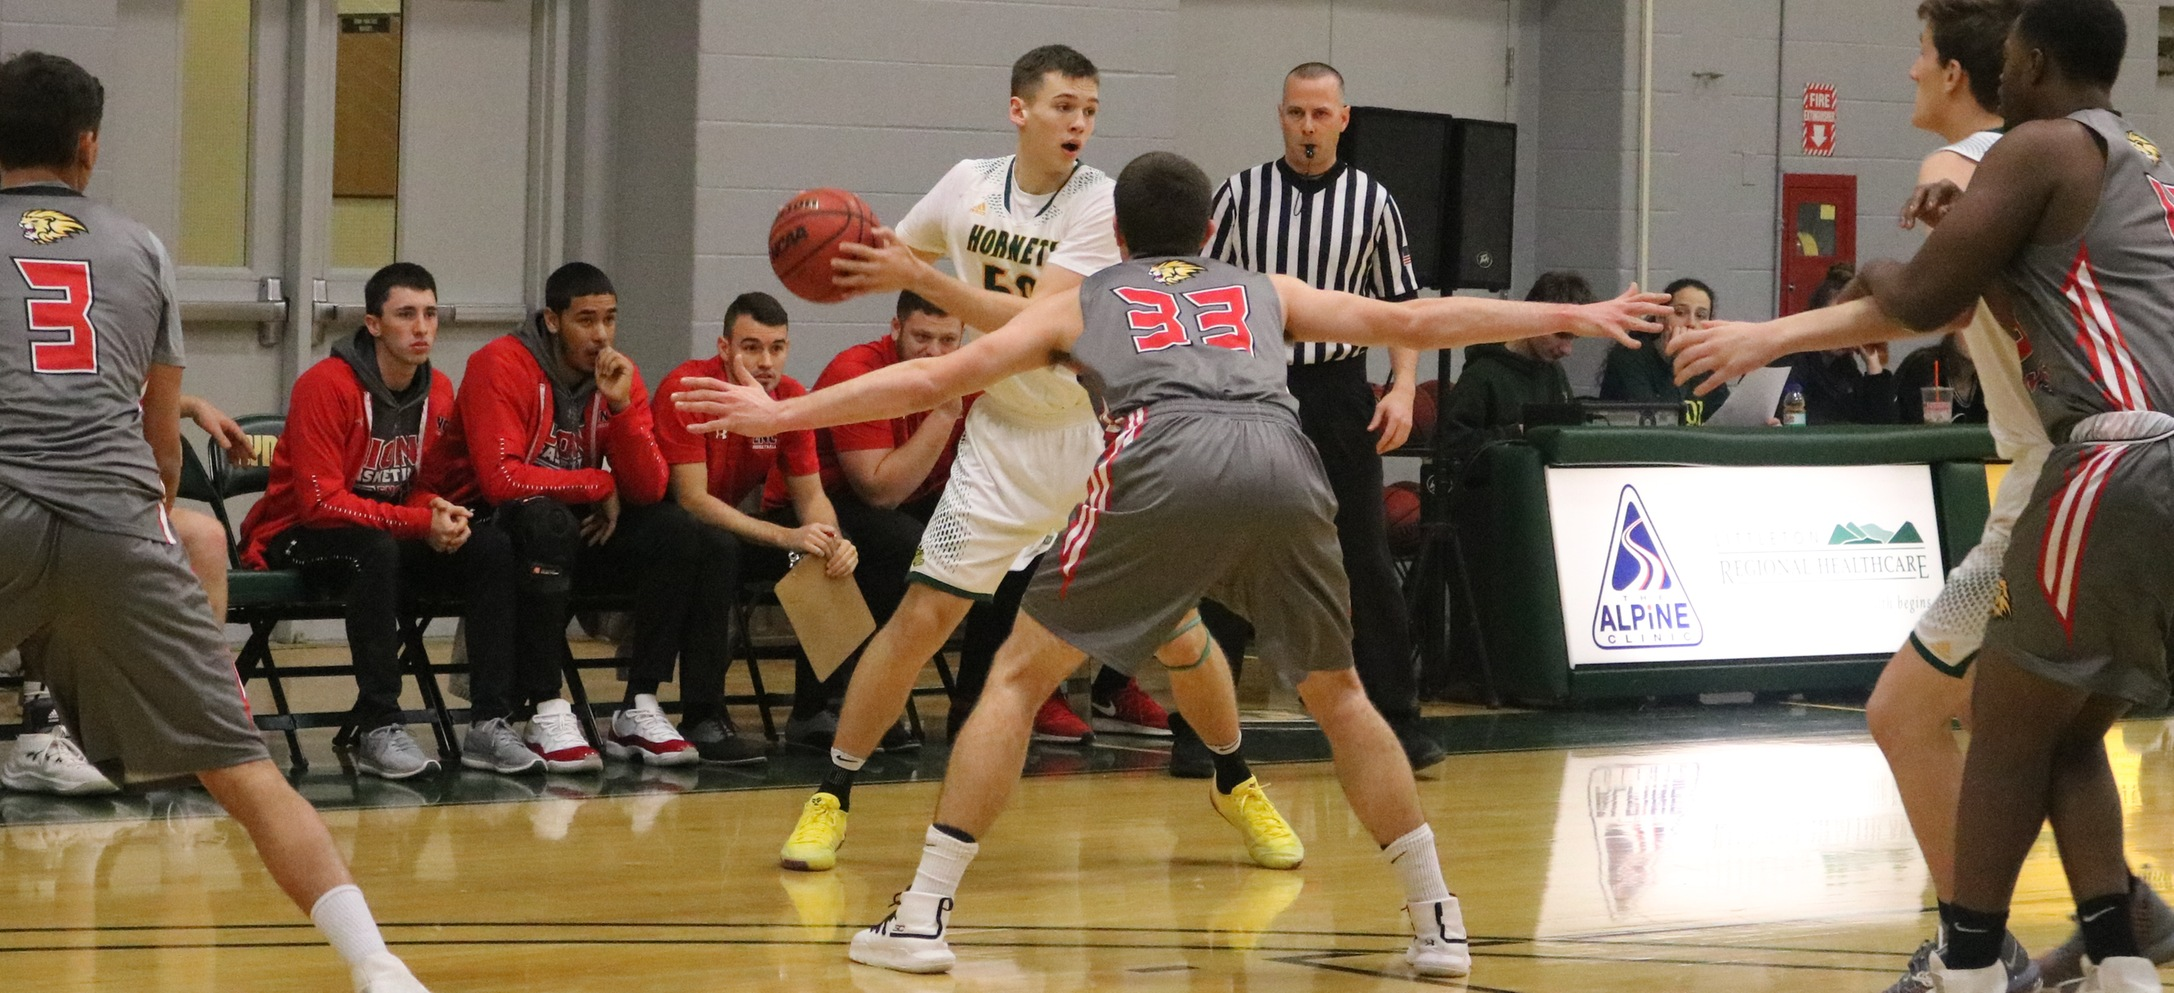 Hornet men unable to sustain fast start in loss to Cazenovia